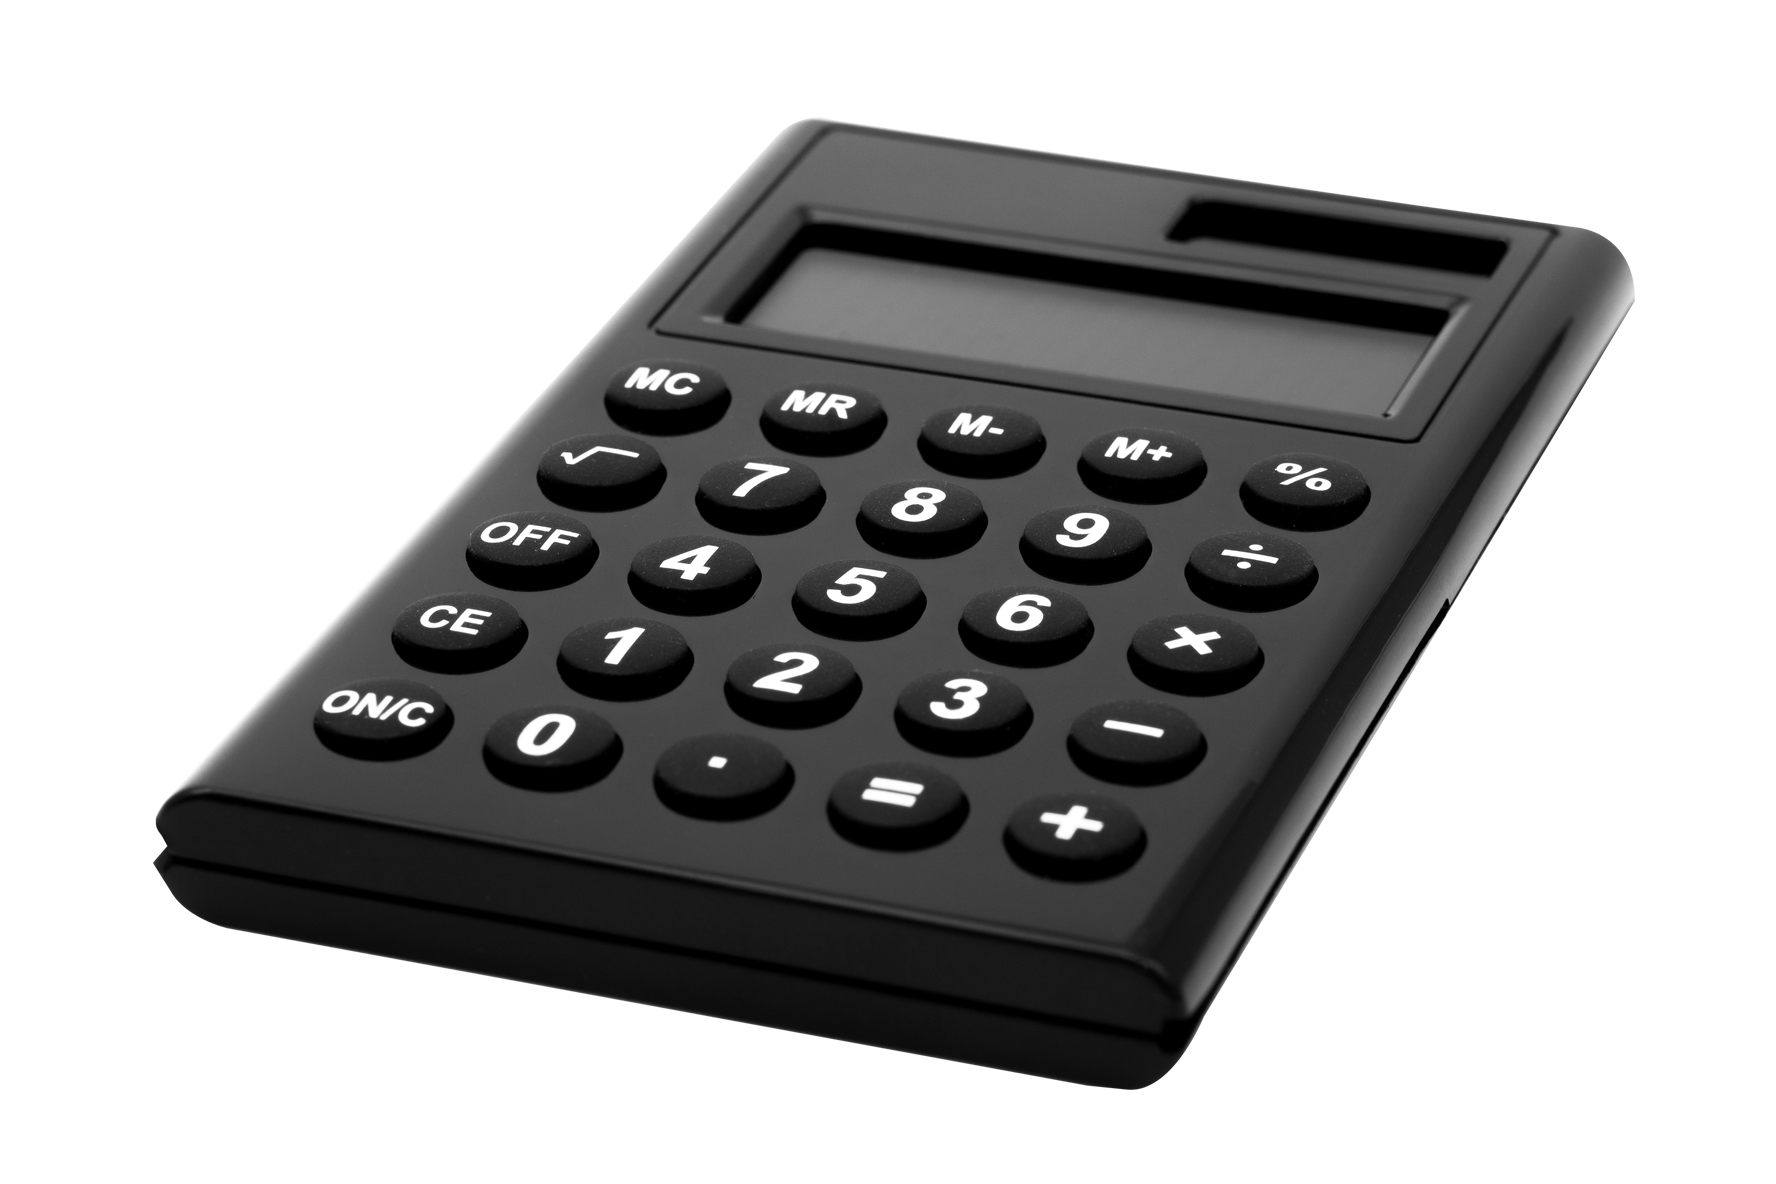 Png calculator. Images pngpix transparent image